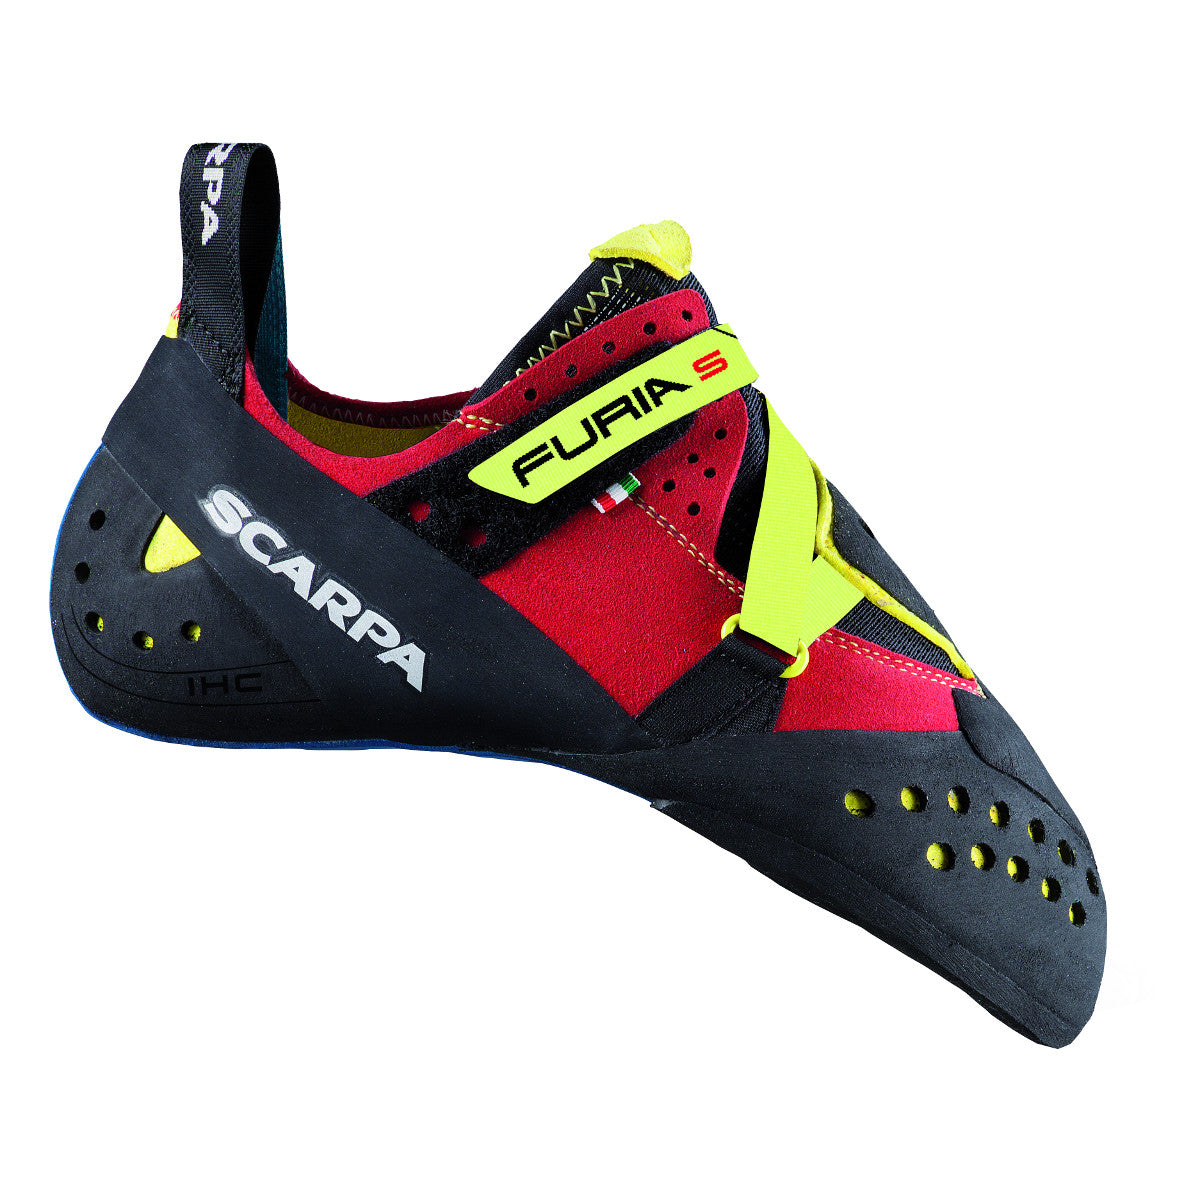 Scarpa Furia S climbing shoe, in black, red and yellow colours